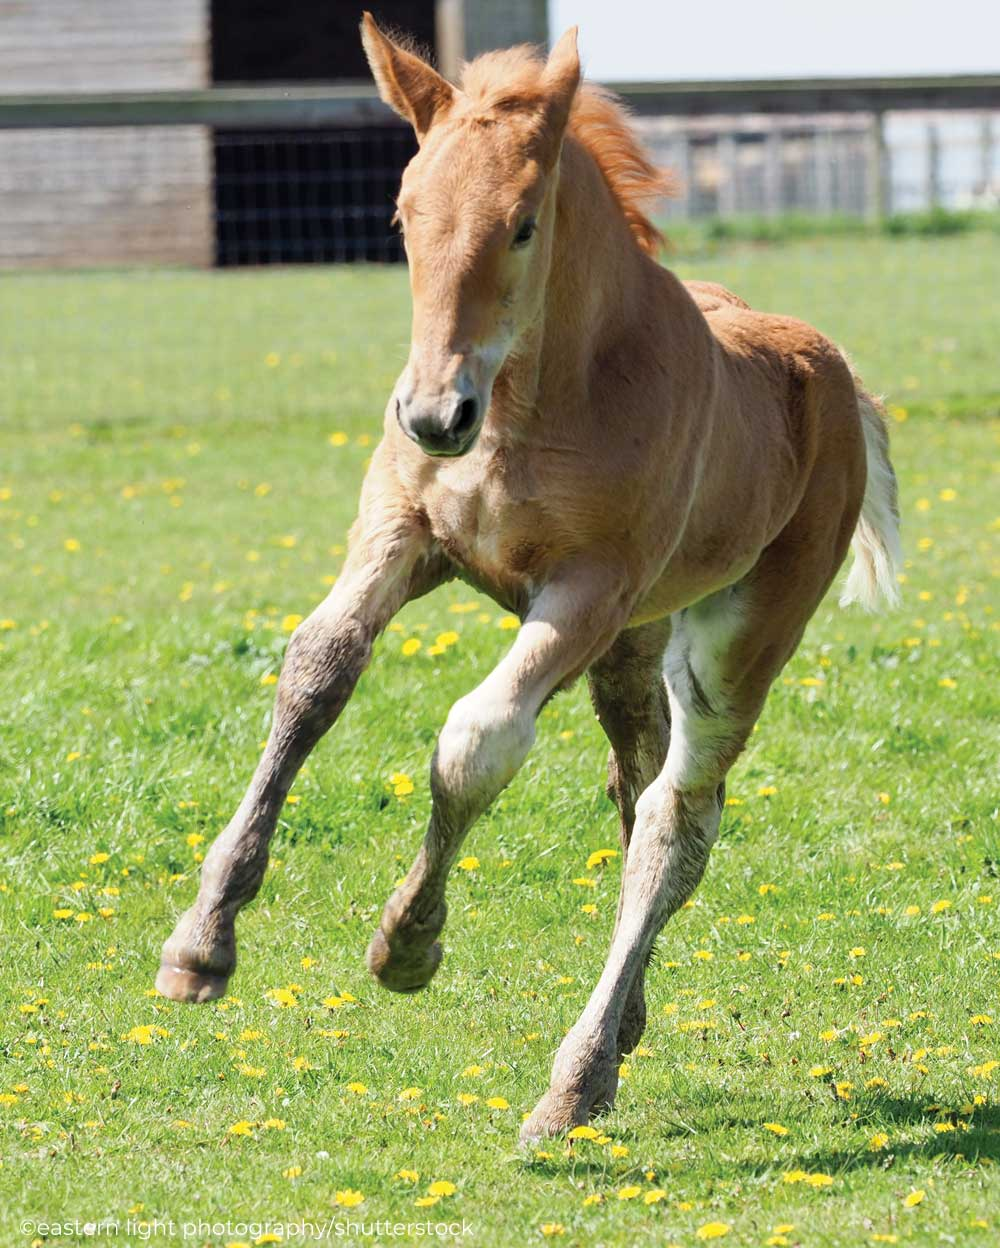 Suffolk Punch foal cantering in the pasture